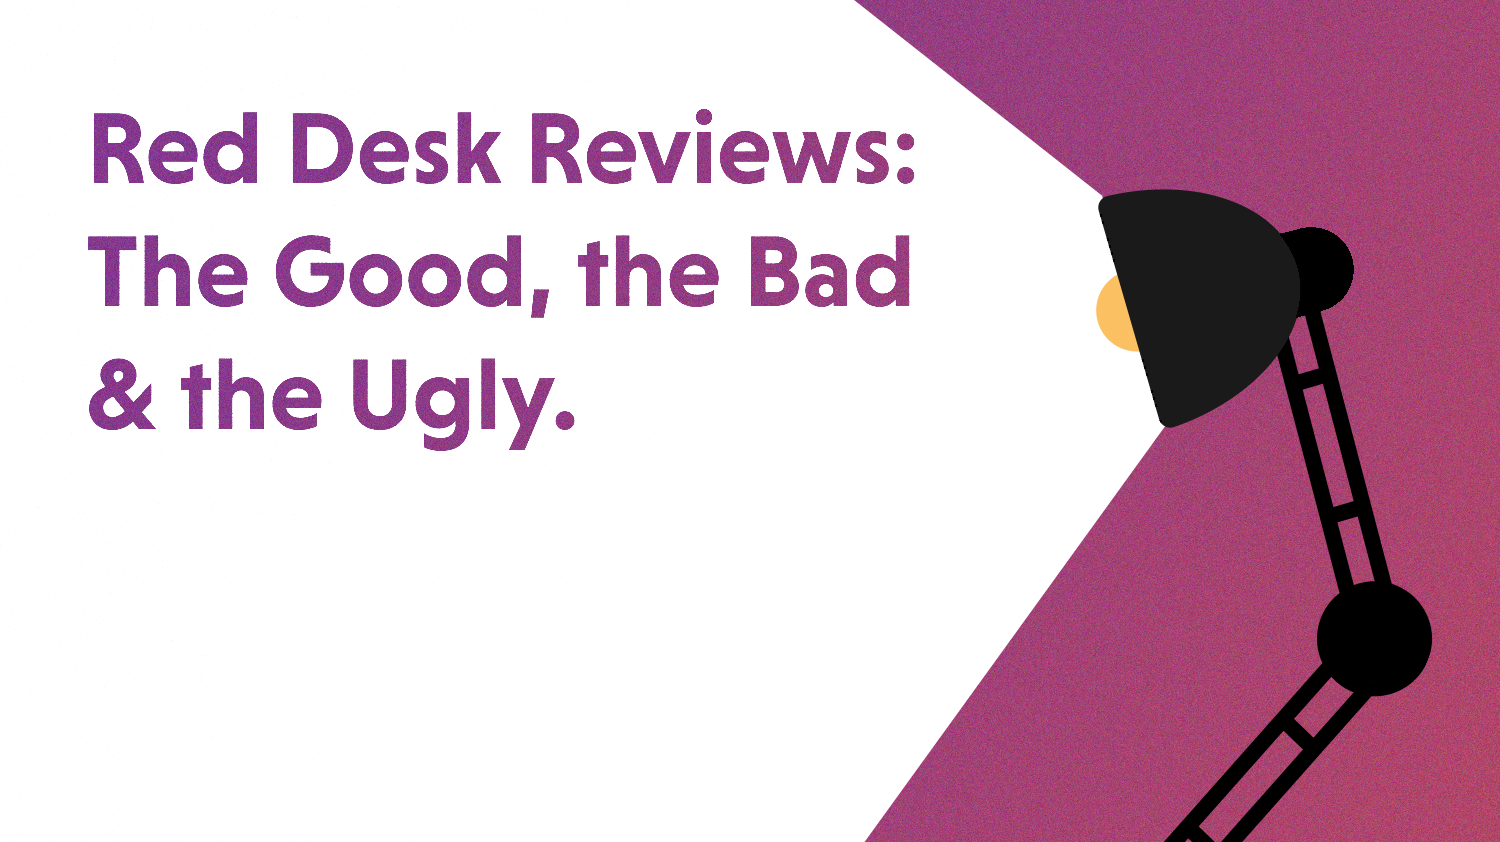 Red Desk Reviews: The Good, the Bad, and the Ugly